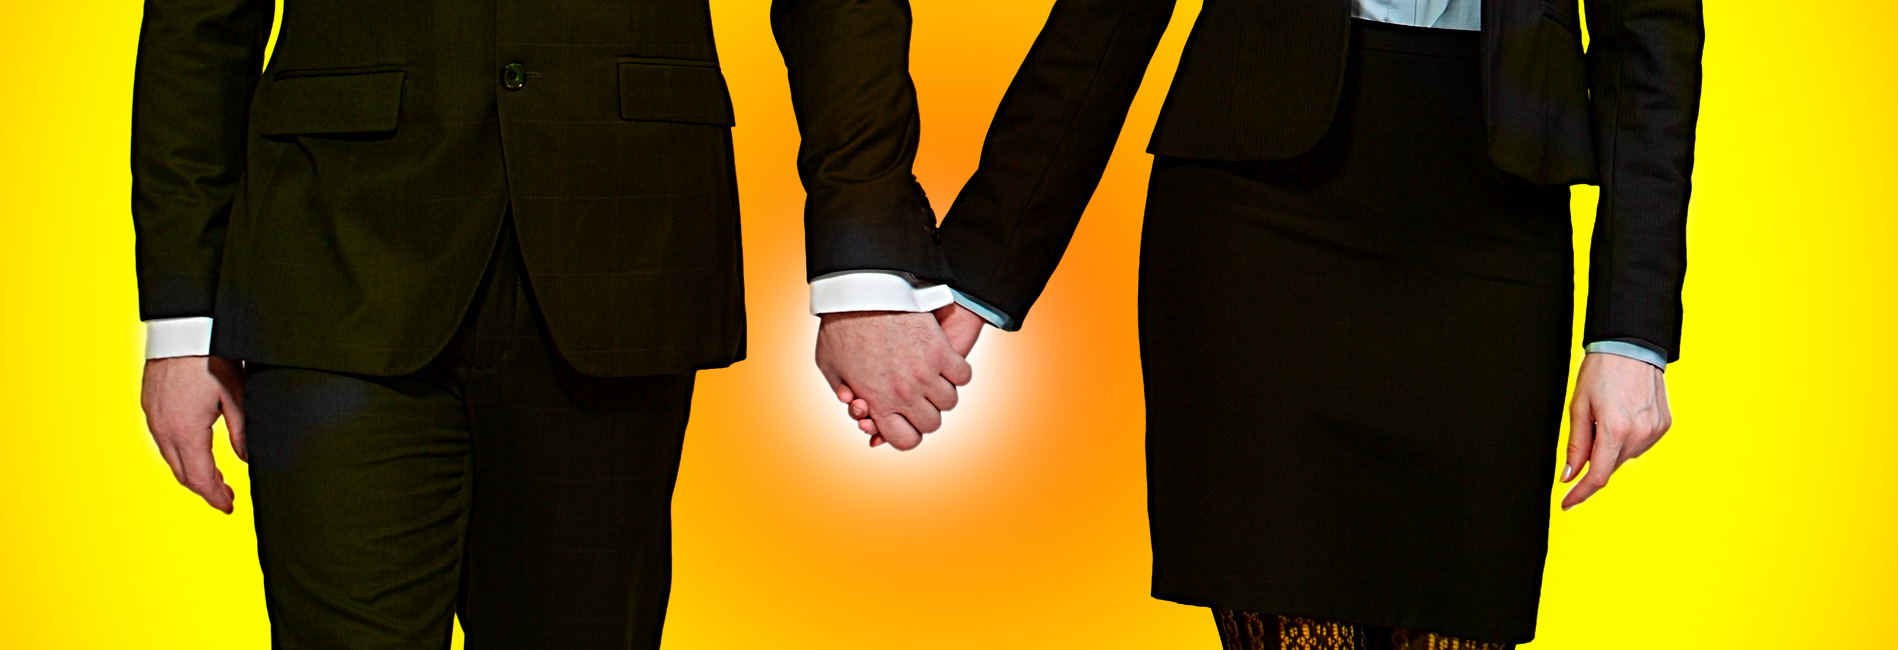 Couple in suits holding hands